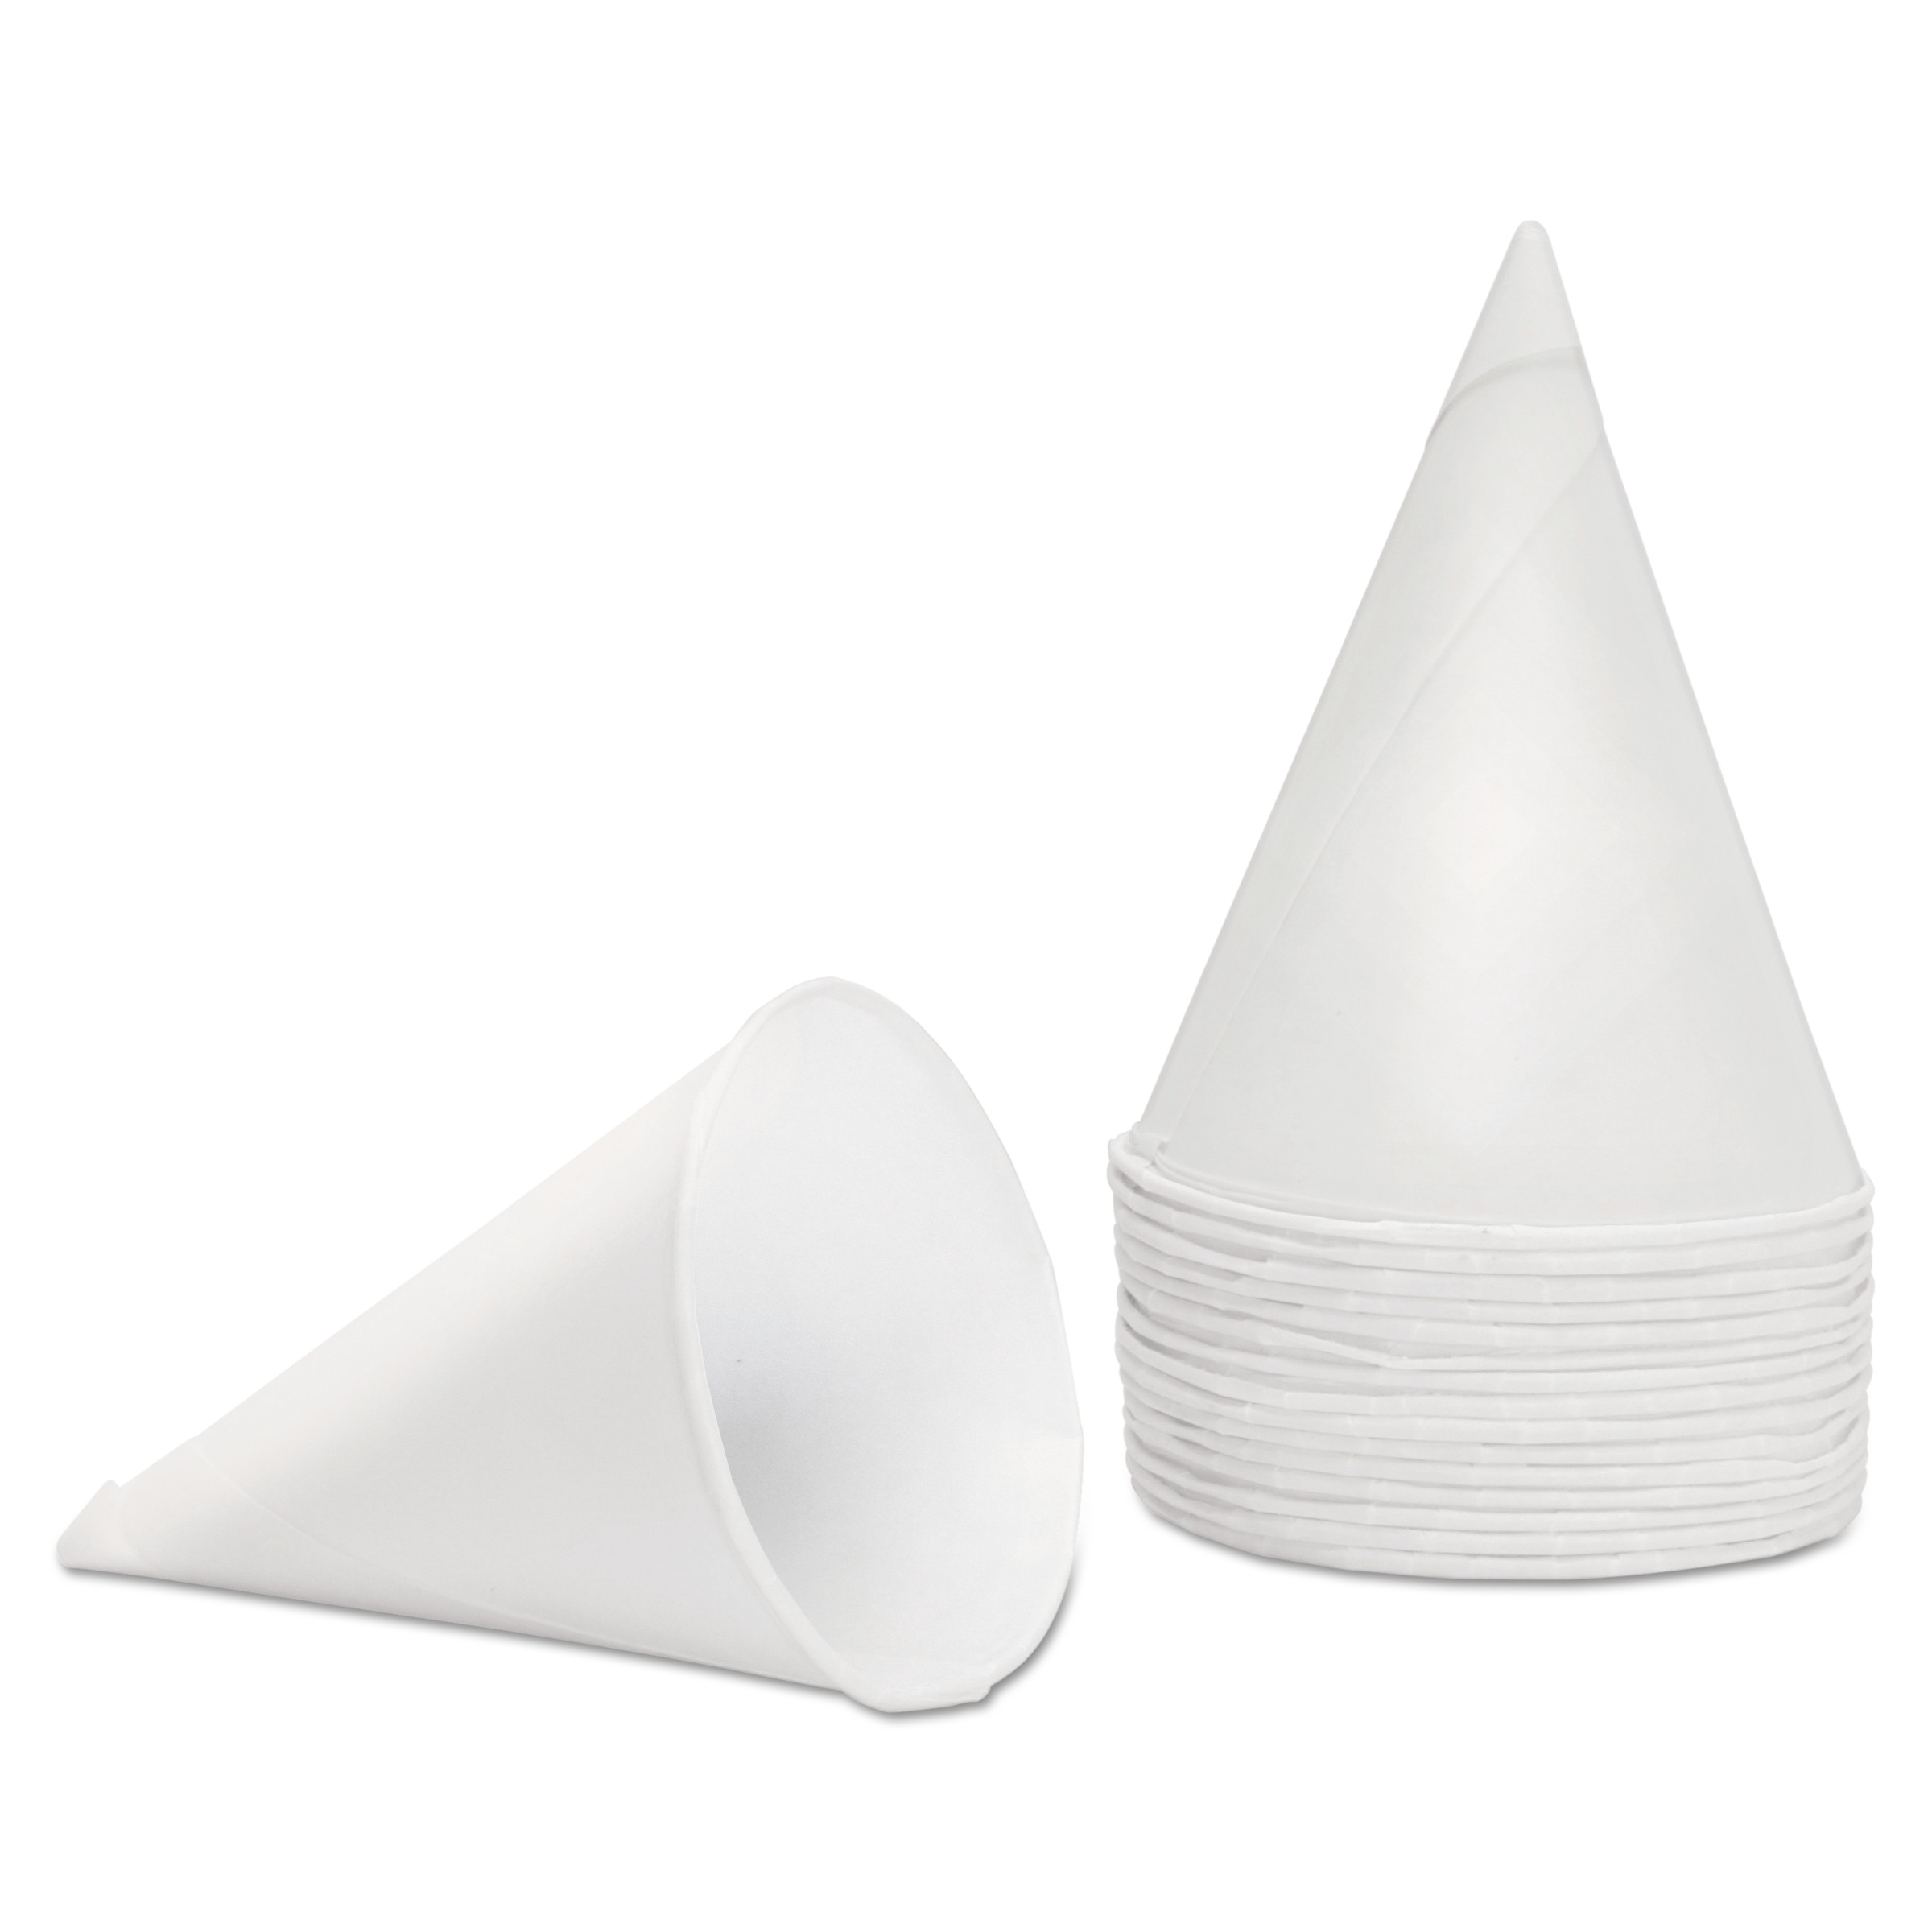 Konie 4.5 oz. White Paper Cone Cups, 5000 count by Konie Cups International